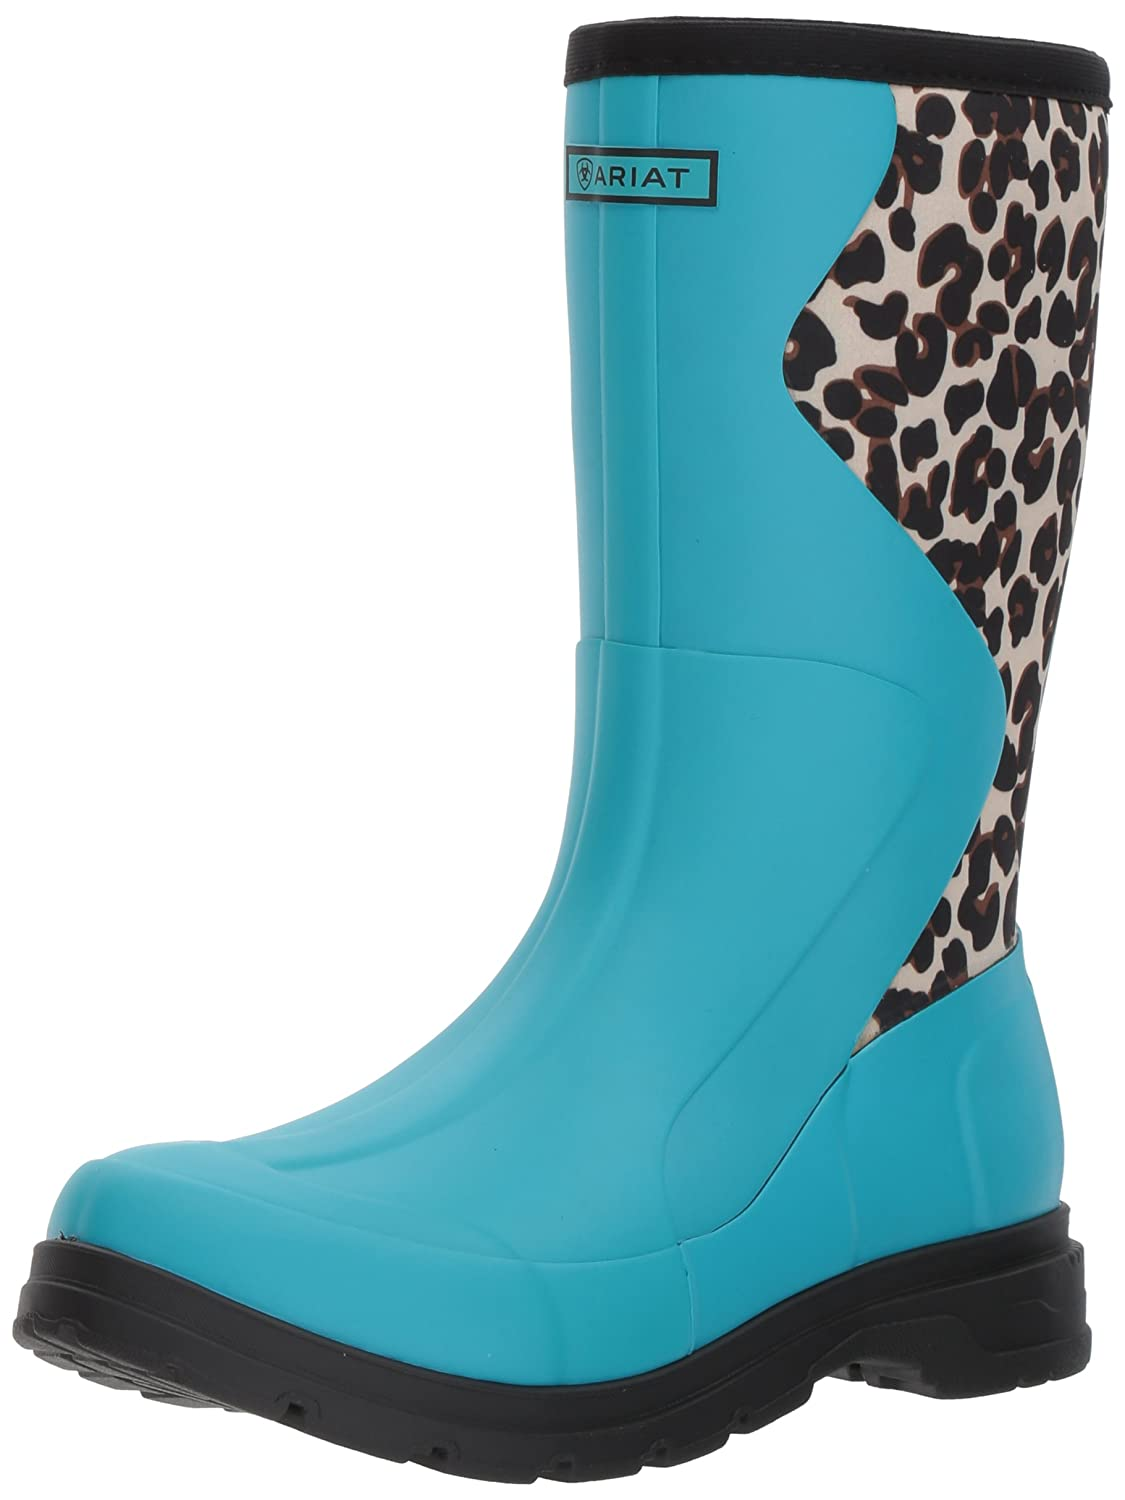 Ariat Women's Springfield Rubber Work Boot B01MRBKN6X 9 B(M) US|Bright Aqua